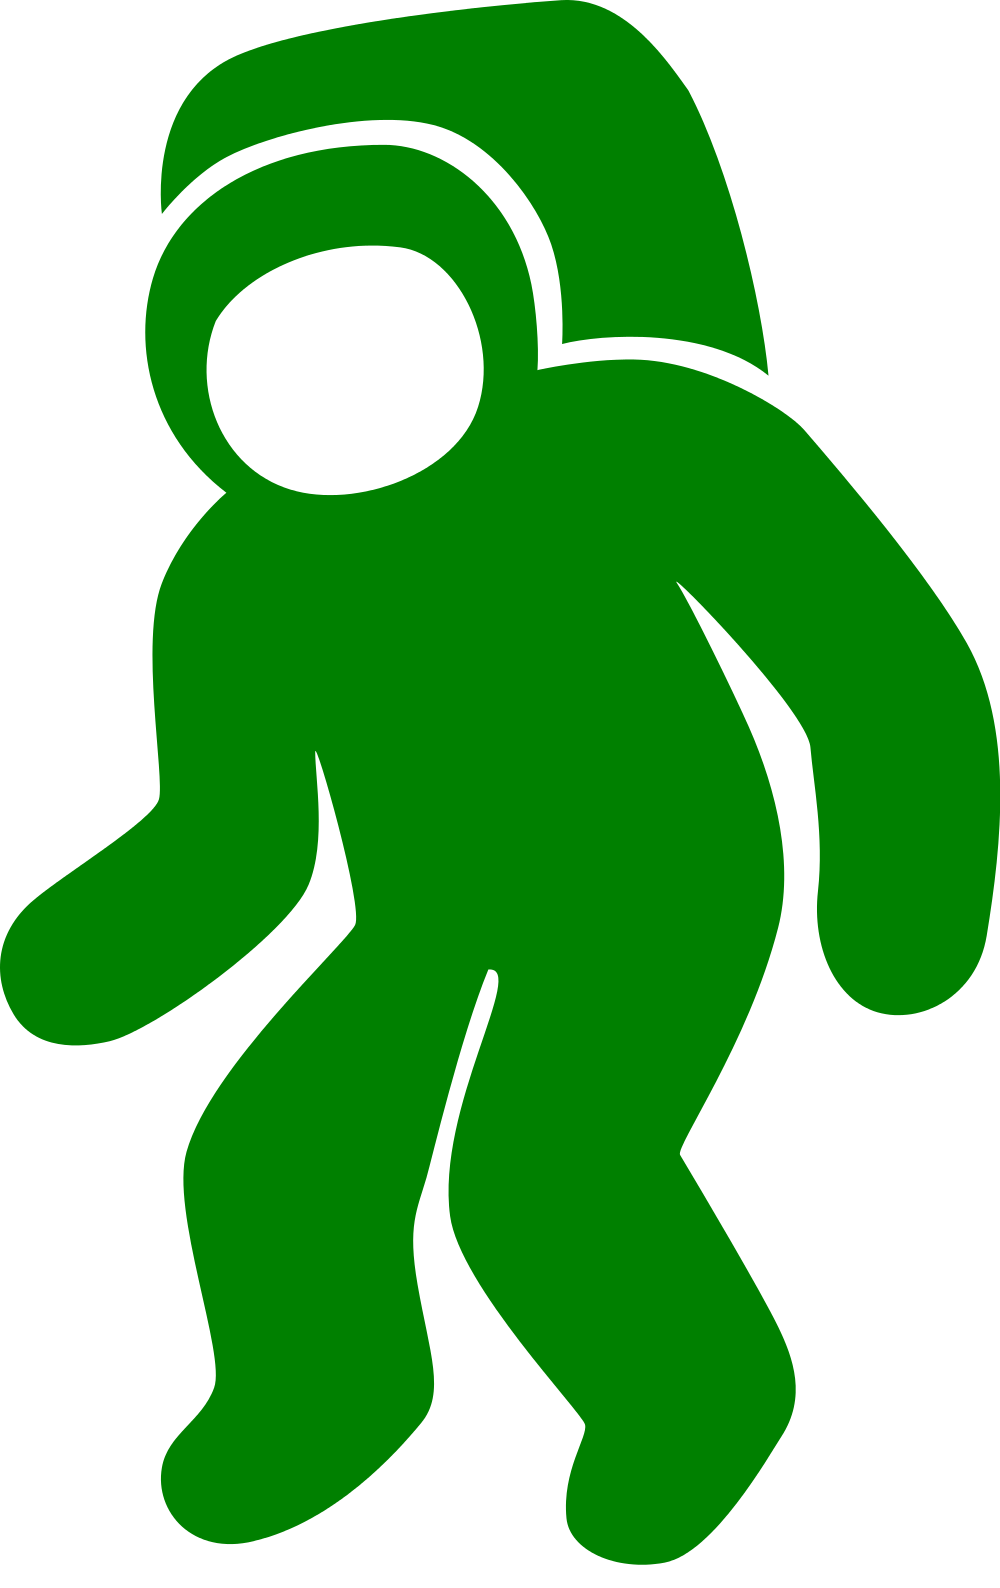 Astronaut svg #175, Download drawings